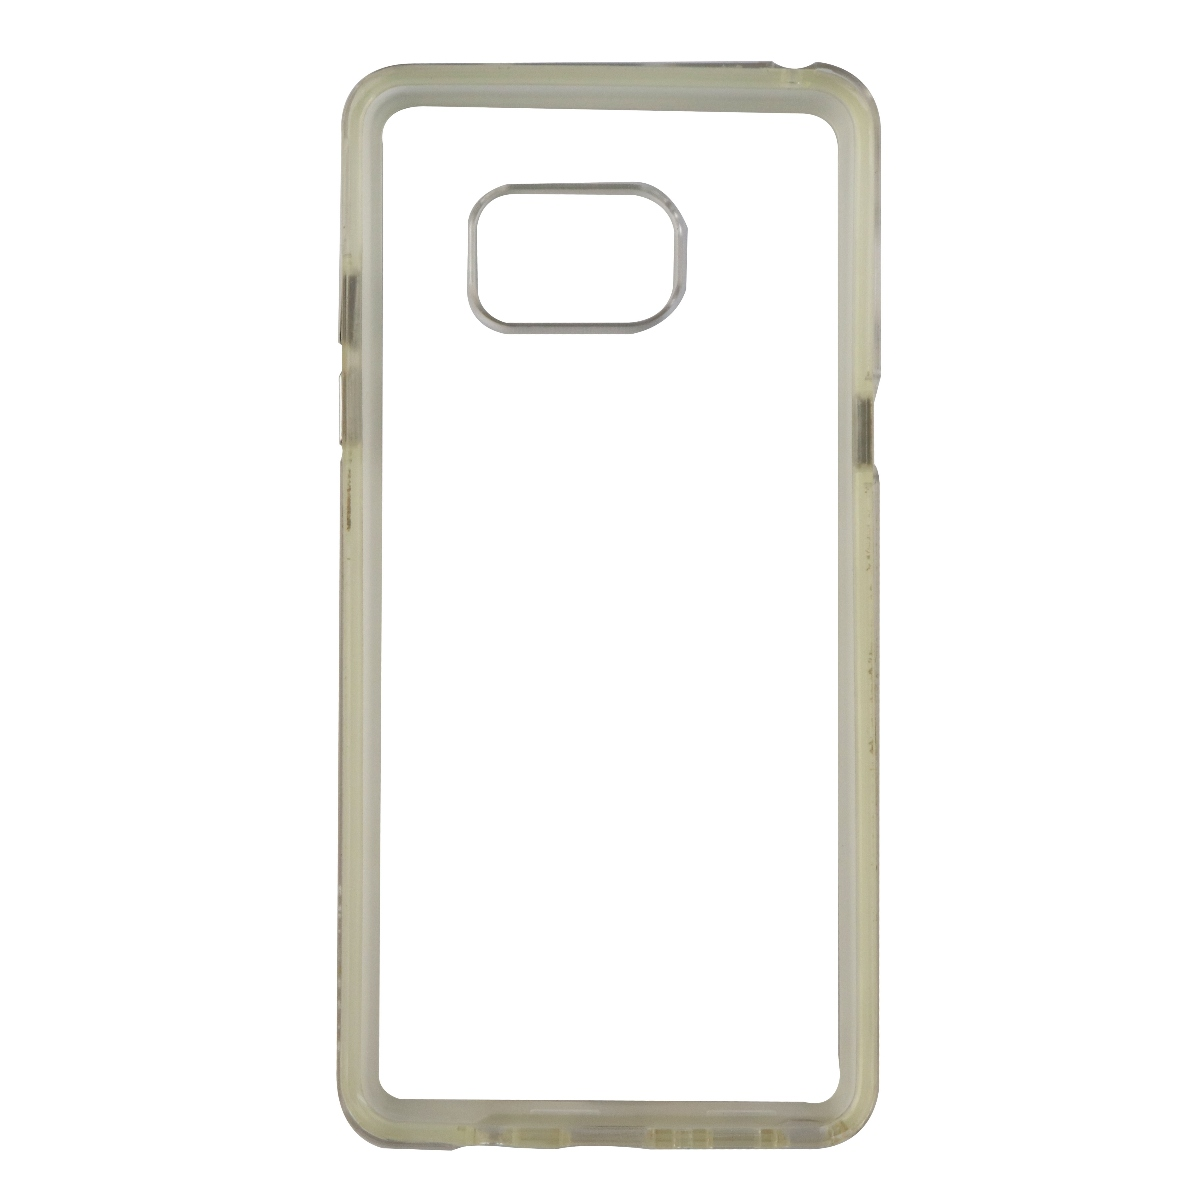 Case-Mate Naked Tough Series Protective Case Cover for Galaxy Note 7 - Clear